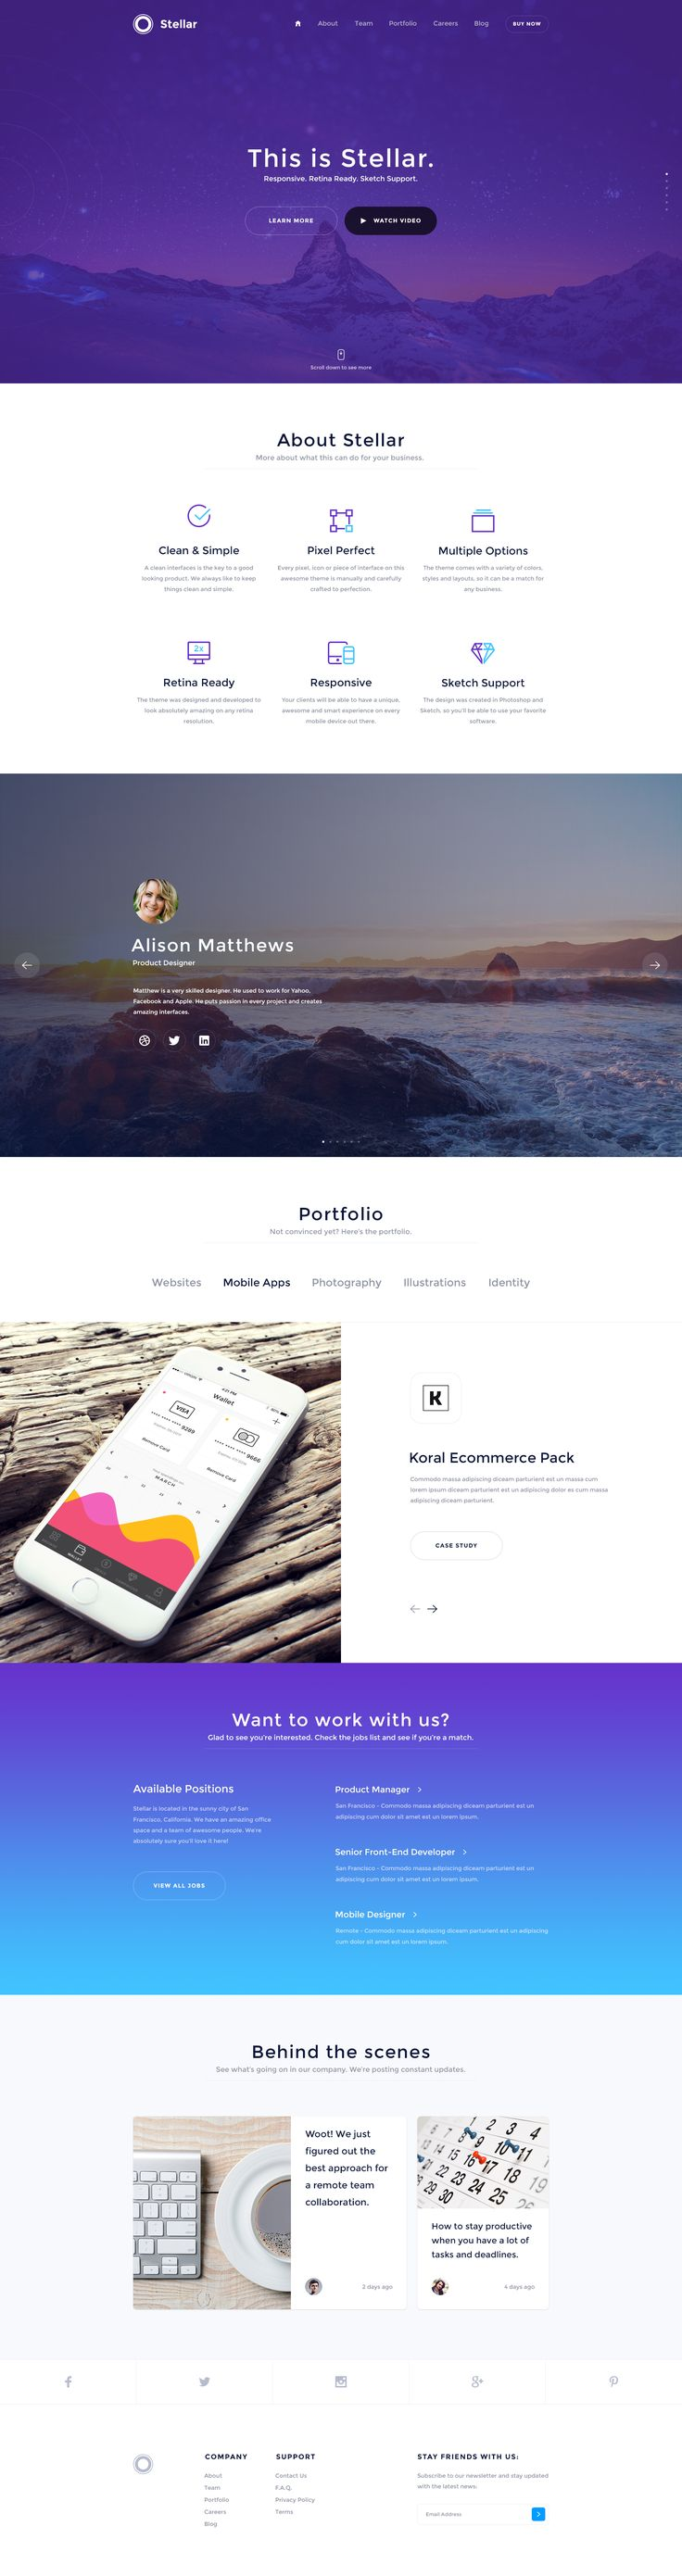 Dribbble - real-pixels.png by Ionut Zamfir